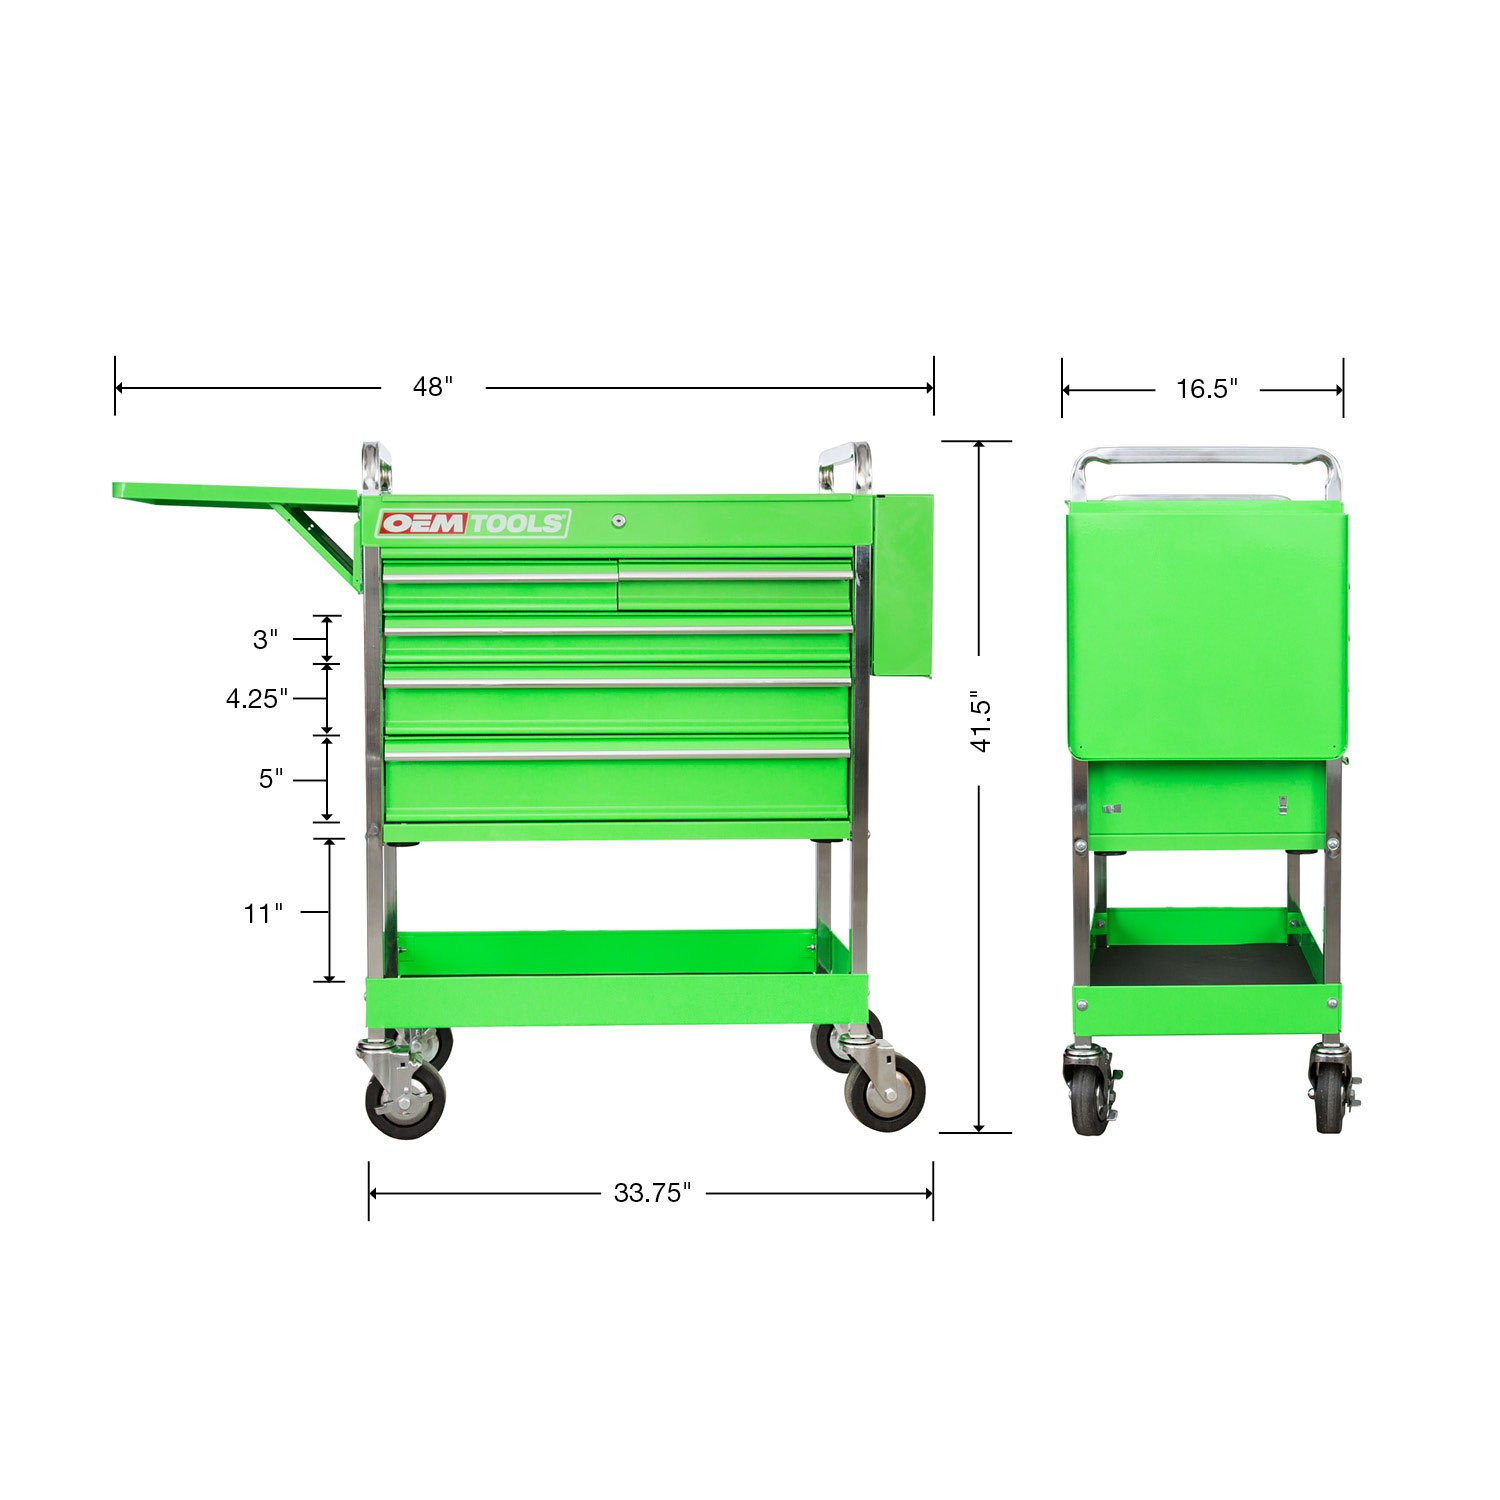 Professional Service Cart - 5 Drawer and 1 Tray (Green) by OEMTOOLS (Image #9)